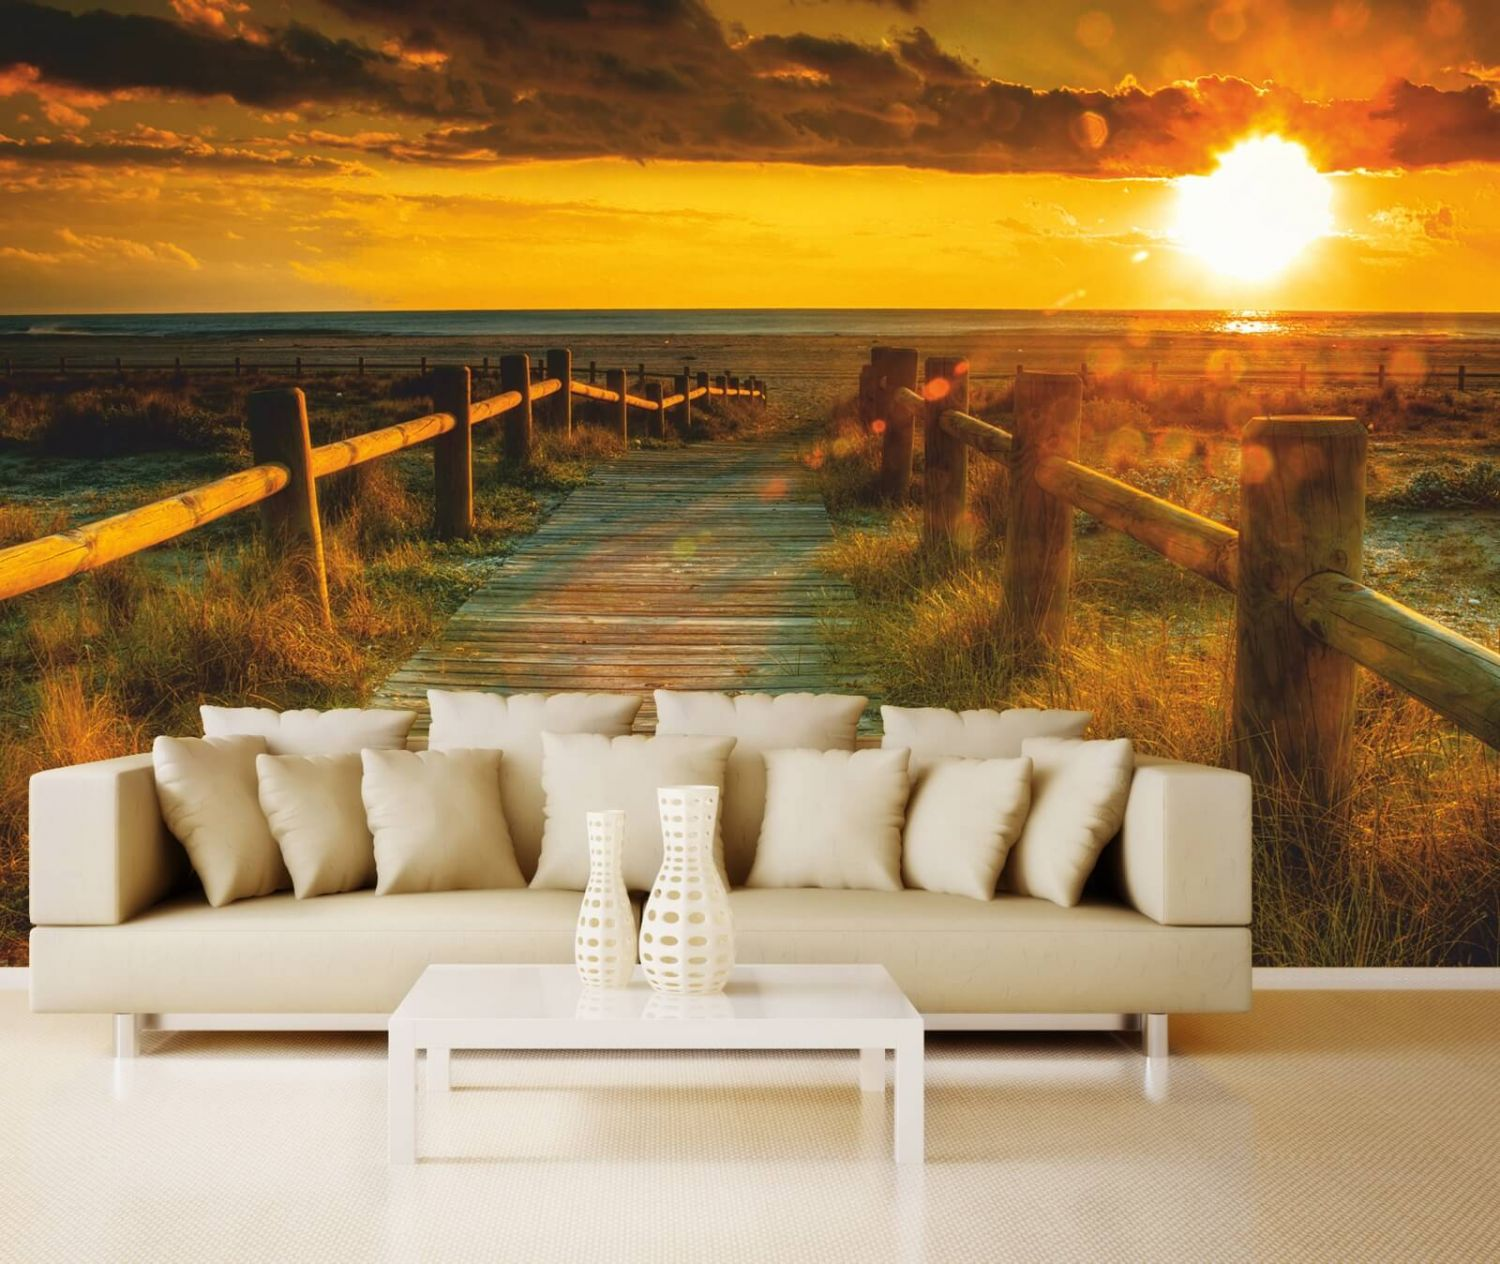 xxl poster fototapete tapete vlies natur wege zum sonnenuntergang am meer ebay. Black Bedroom Furniture Sets. Home Design Ideas